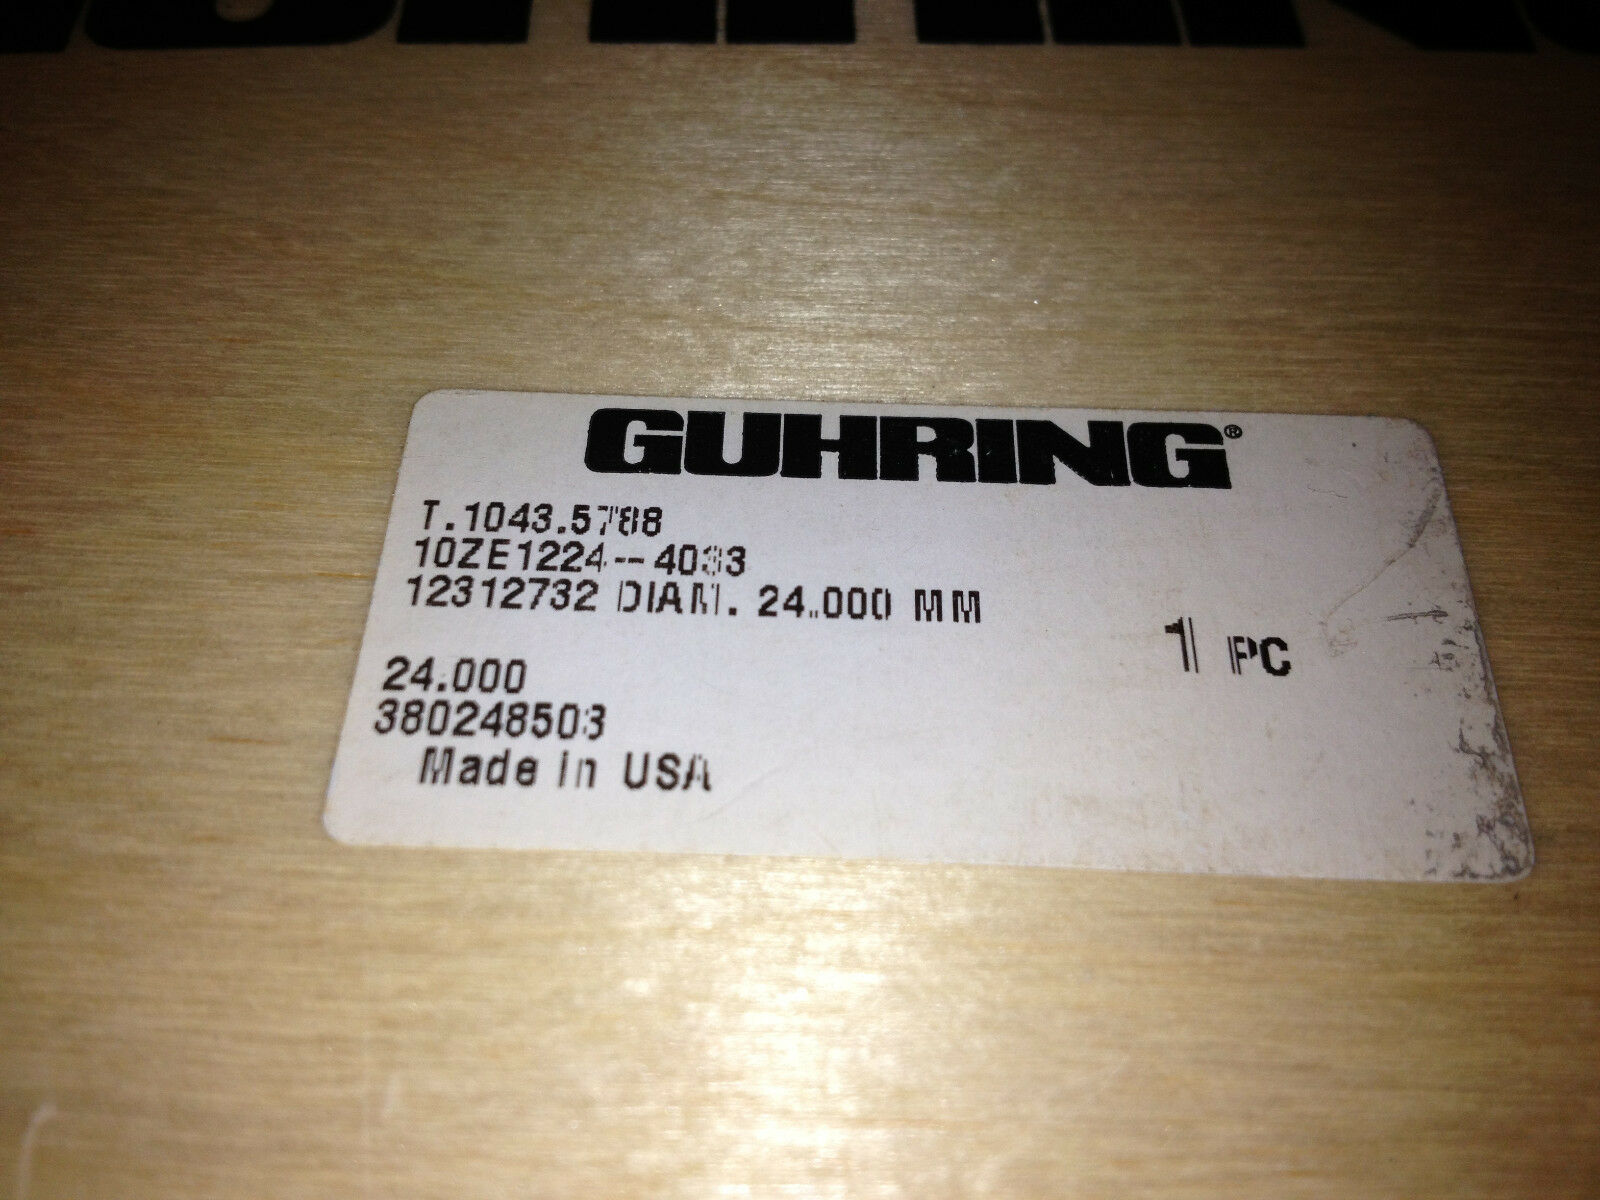 ABS-50-SHANK,10ZE1224-4033 BO NEW OLD GUHRING T.1043.5788 24mm PCD-TIPPED TOOL